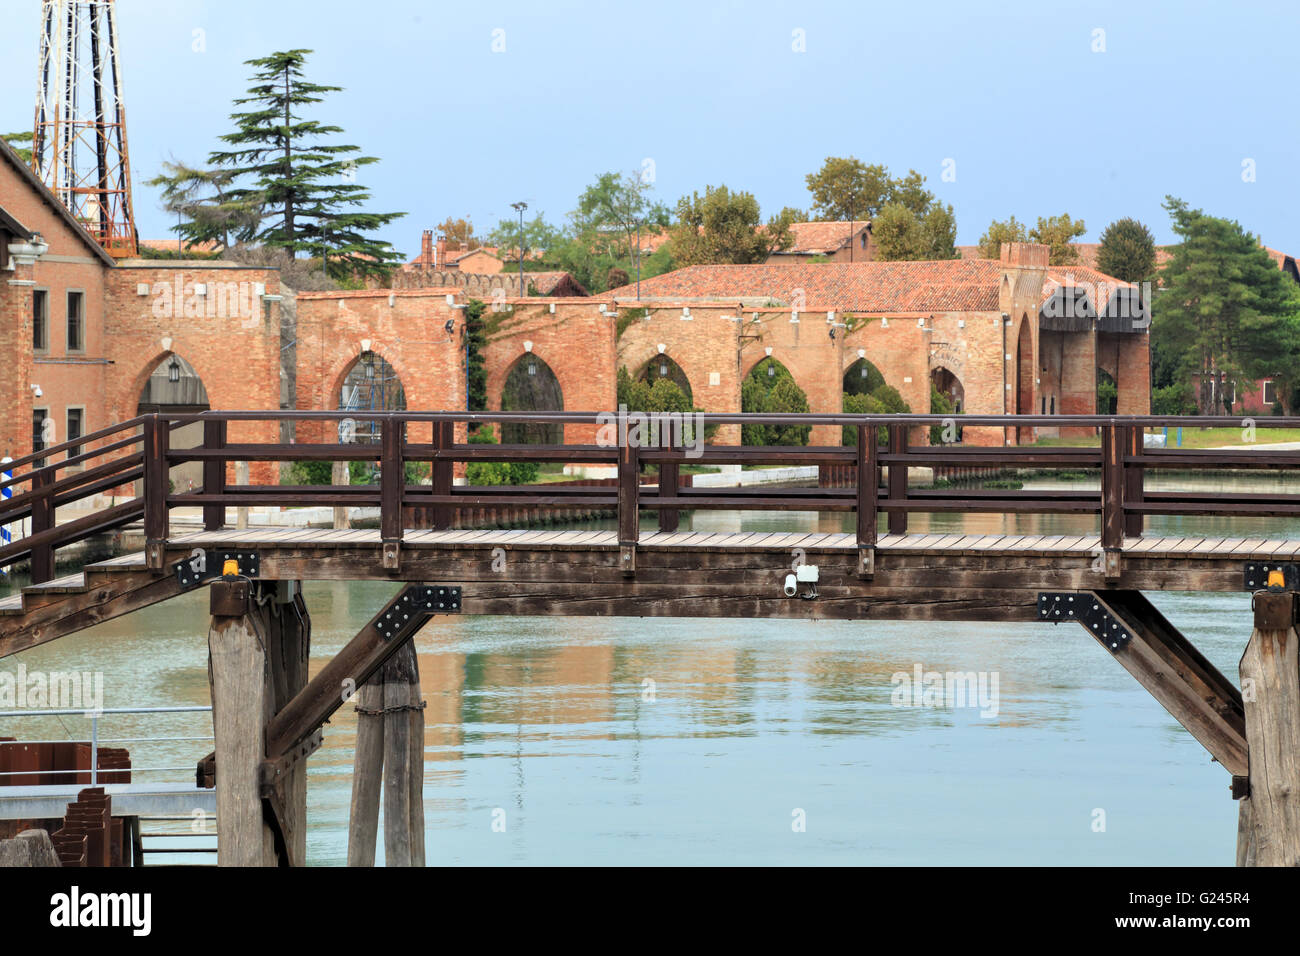 Arsenale, Venezia, Castello - Stock Image